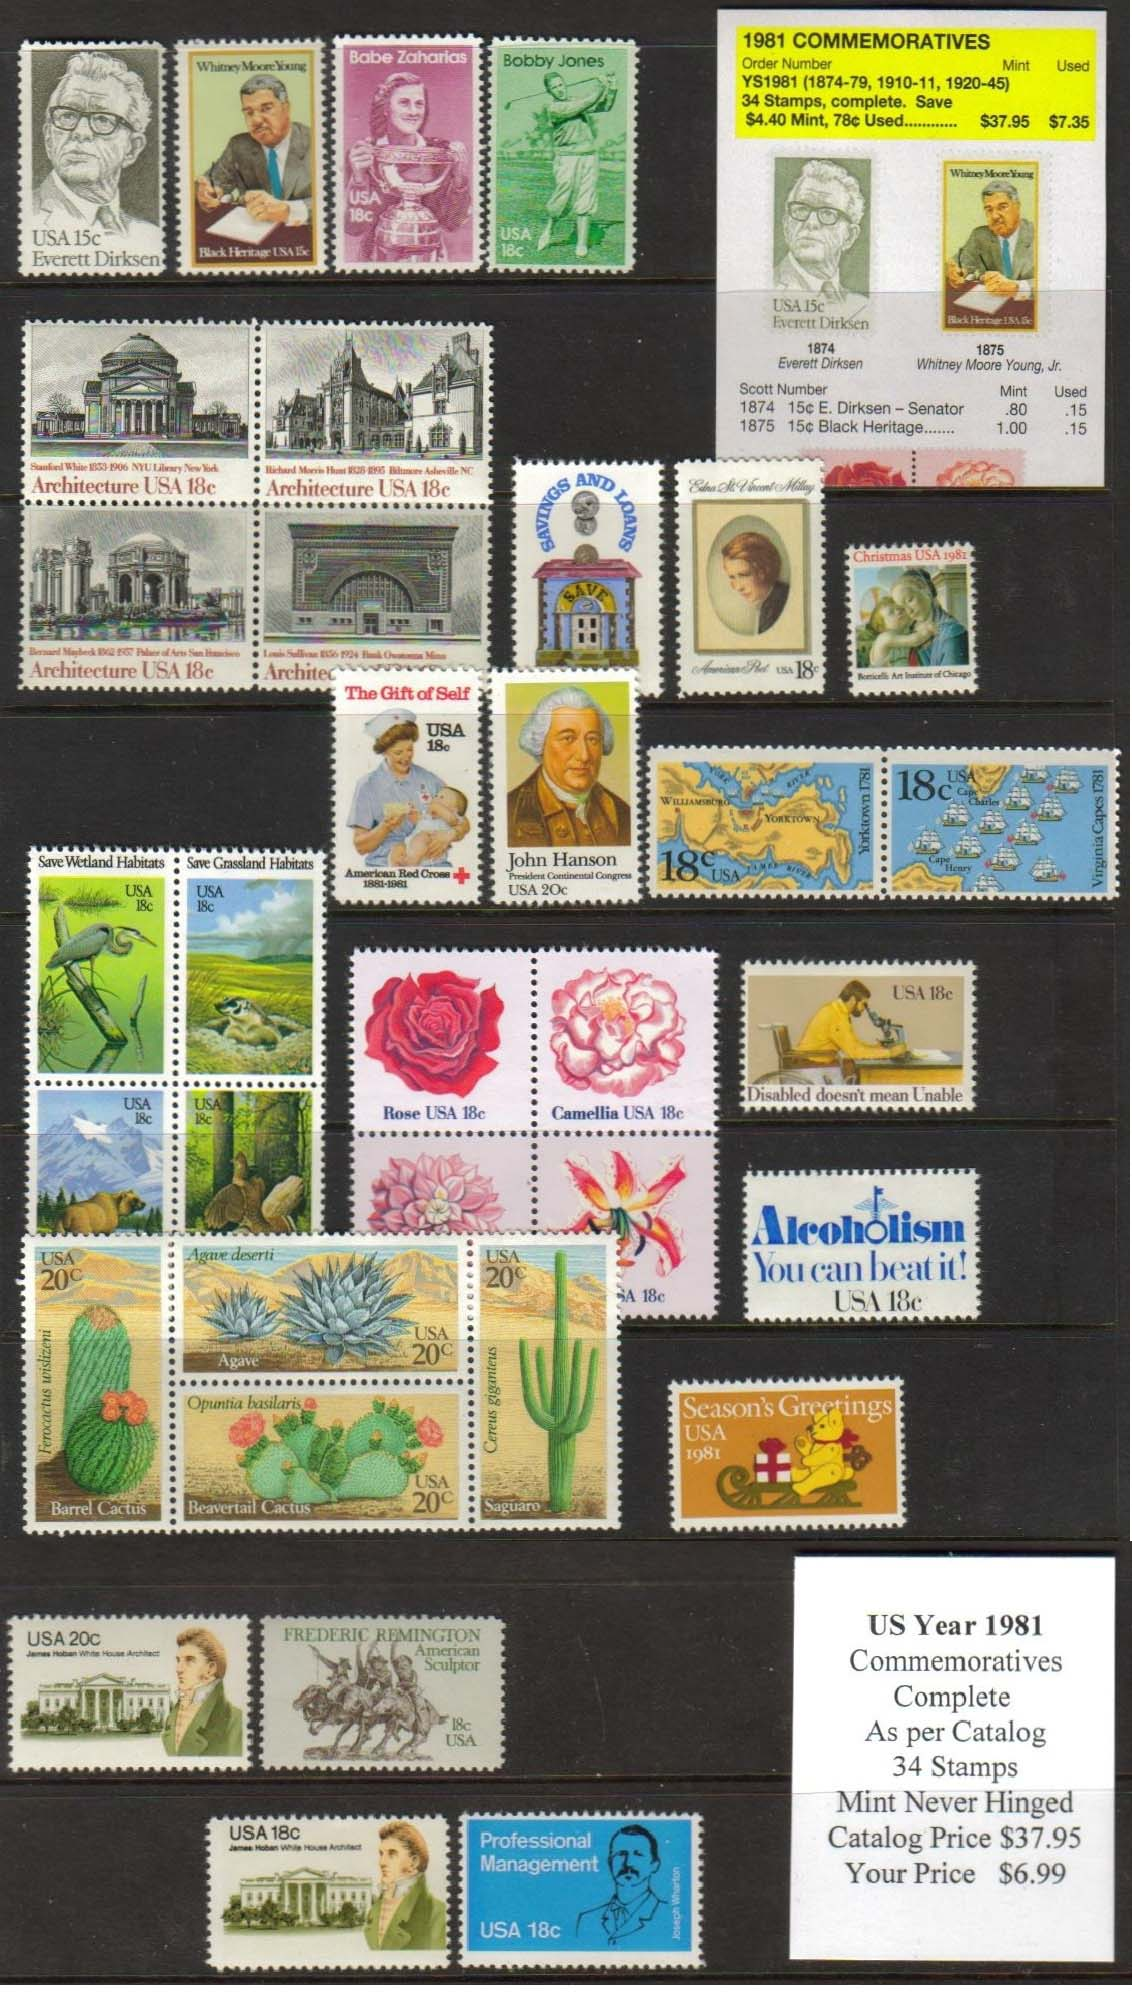 1981 COMMEMORATIVES, 34 STAMPS